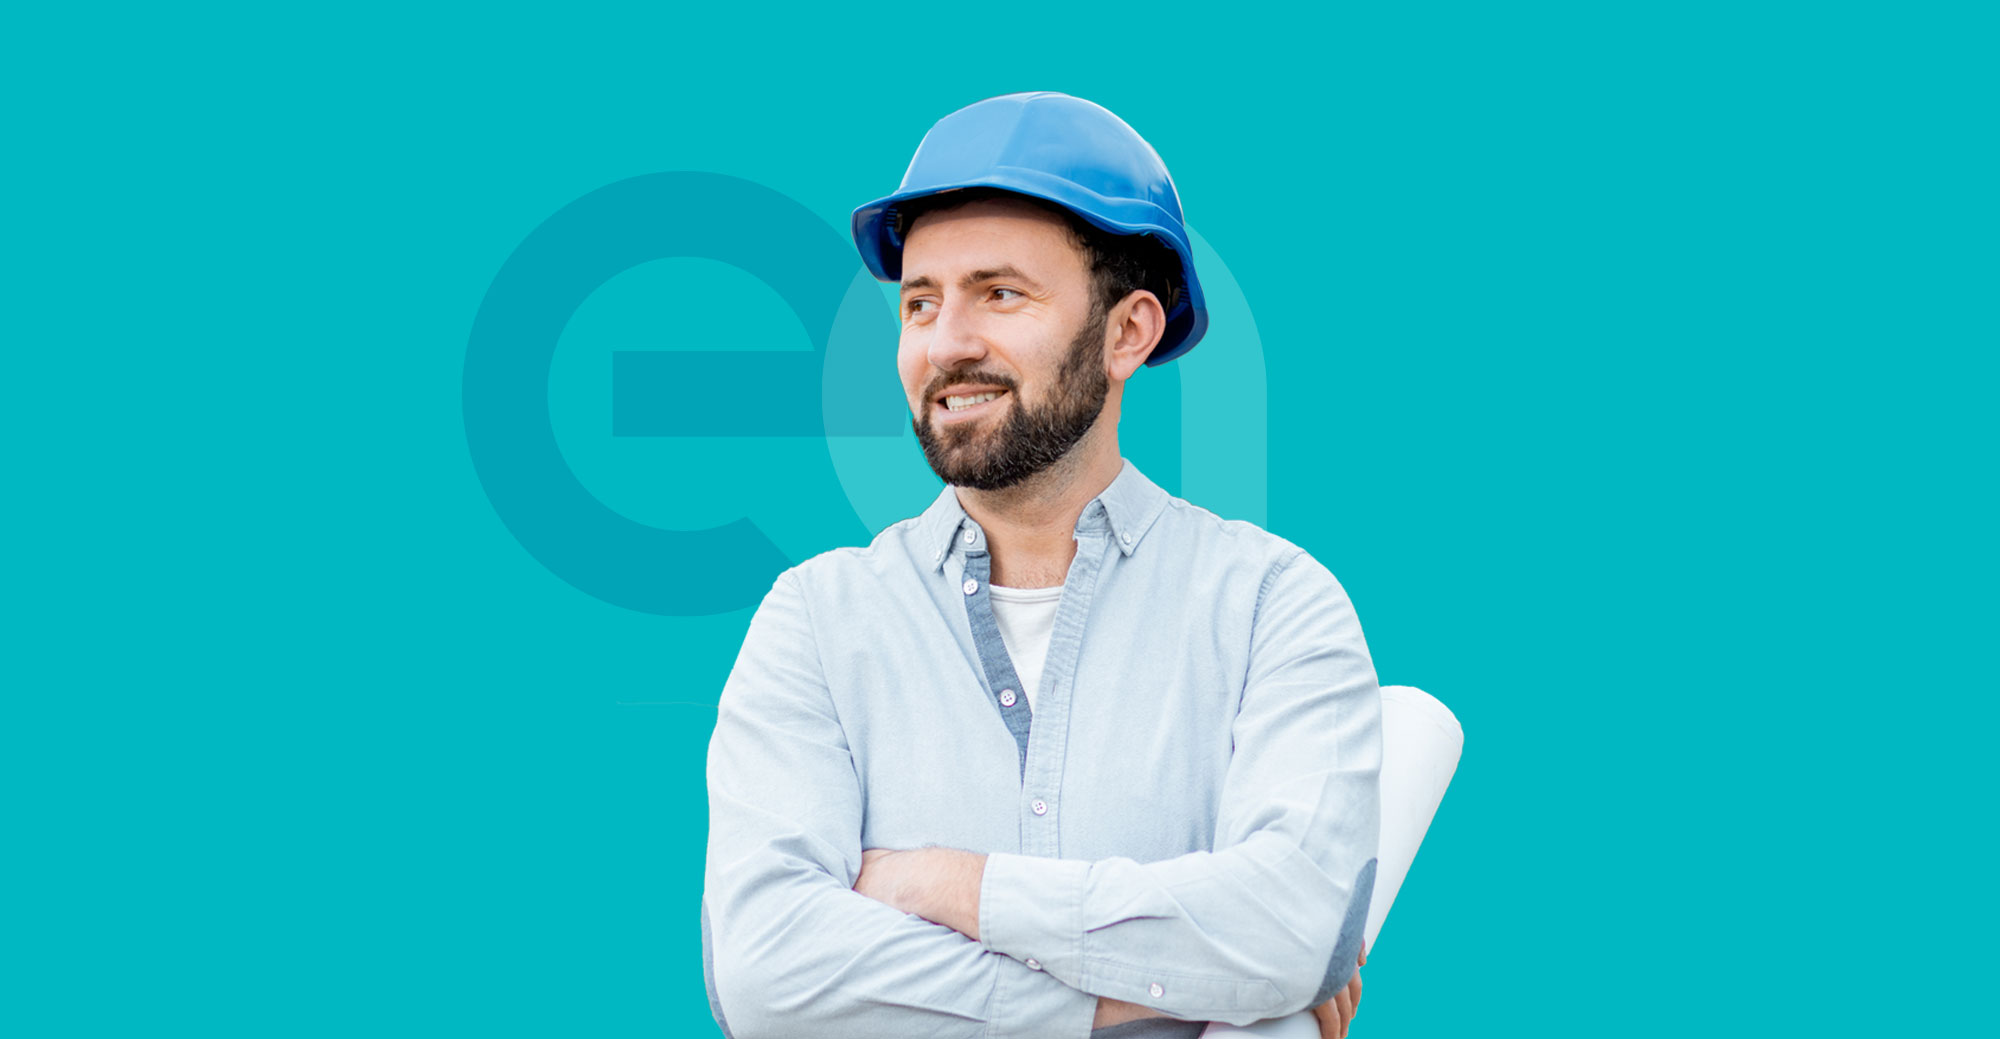 Building and construction worker with EA logo